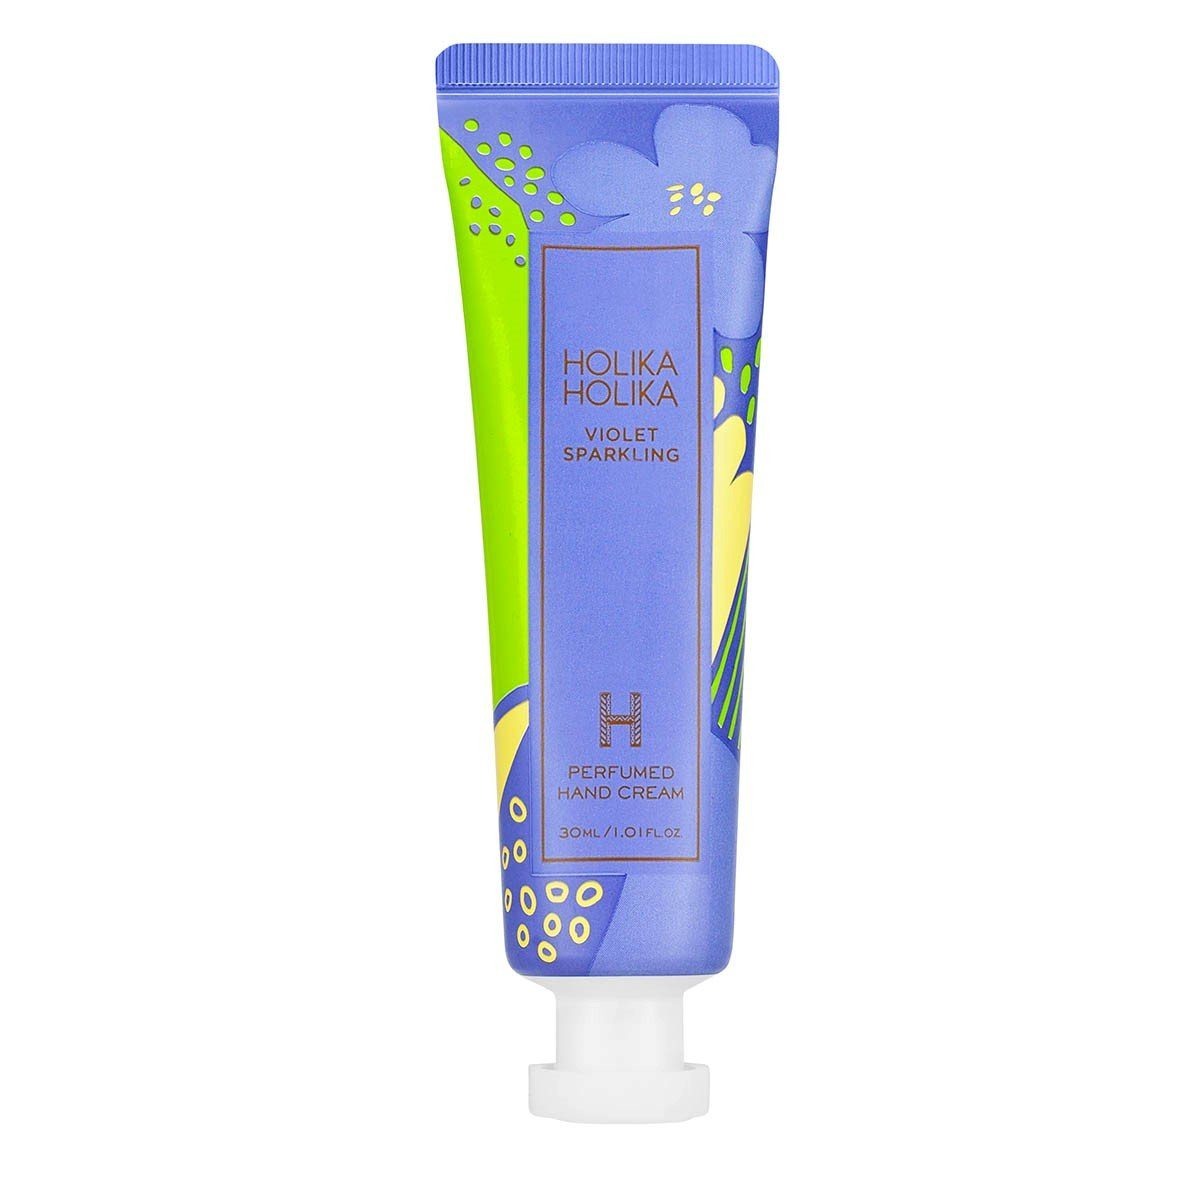 Health & Beauty > Personal Care > Cosmetics > Skin Care > Lotion & Moisturizer - Violet Sparkling Perfumed Hand Cream Krem Do Rąk 30 Ml